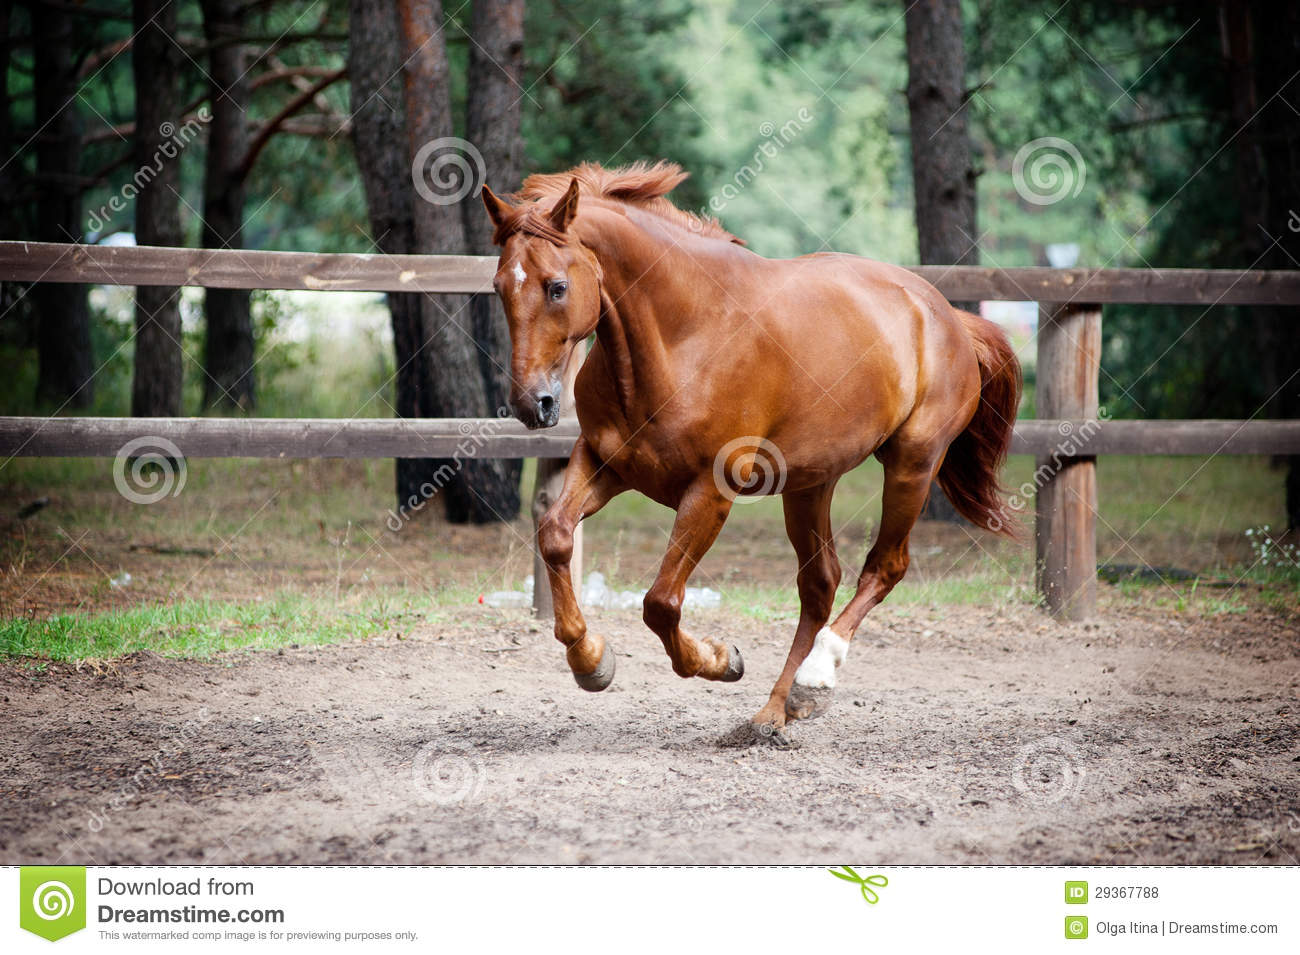 Chestnut horse in action